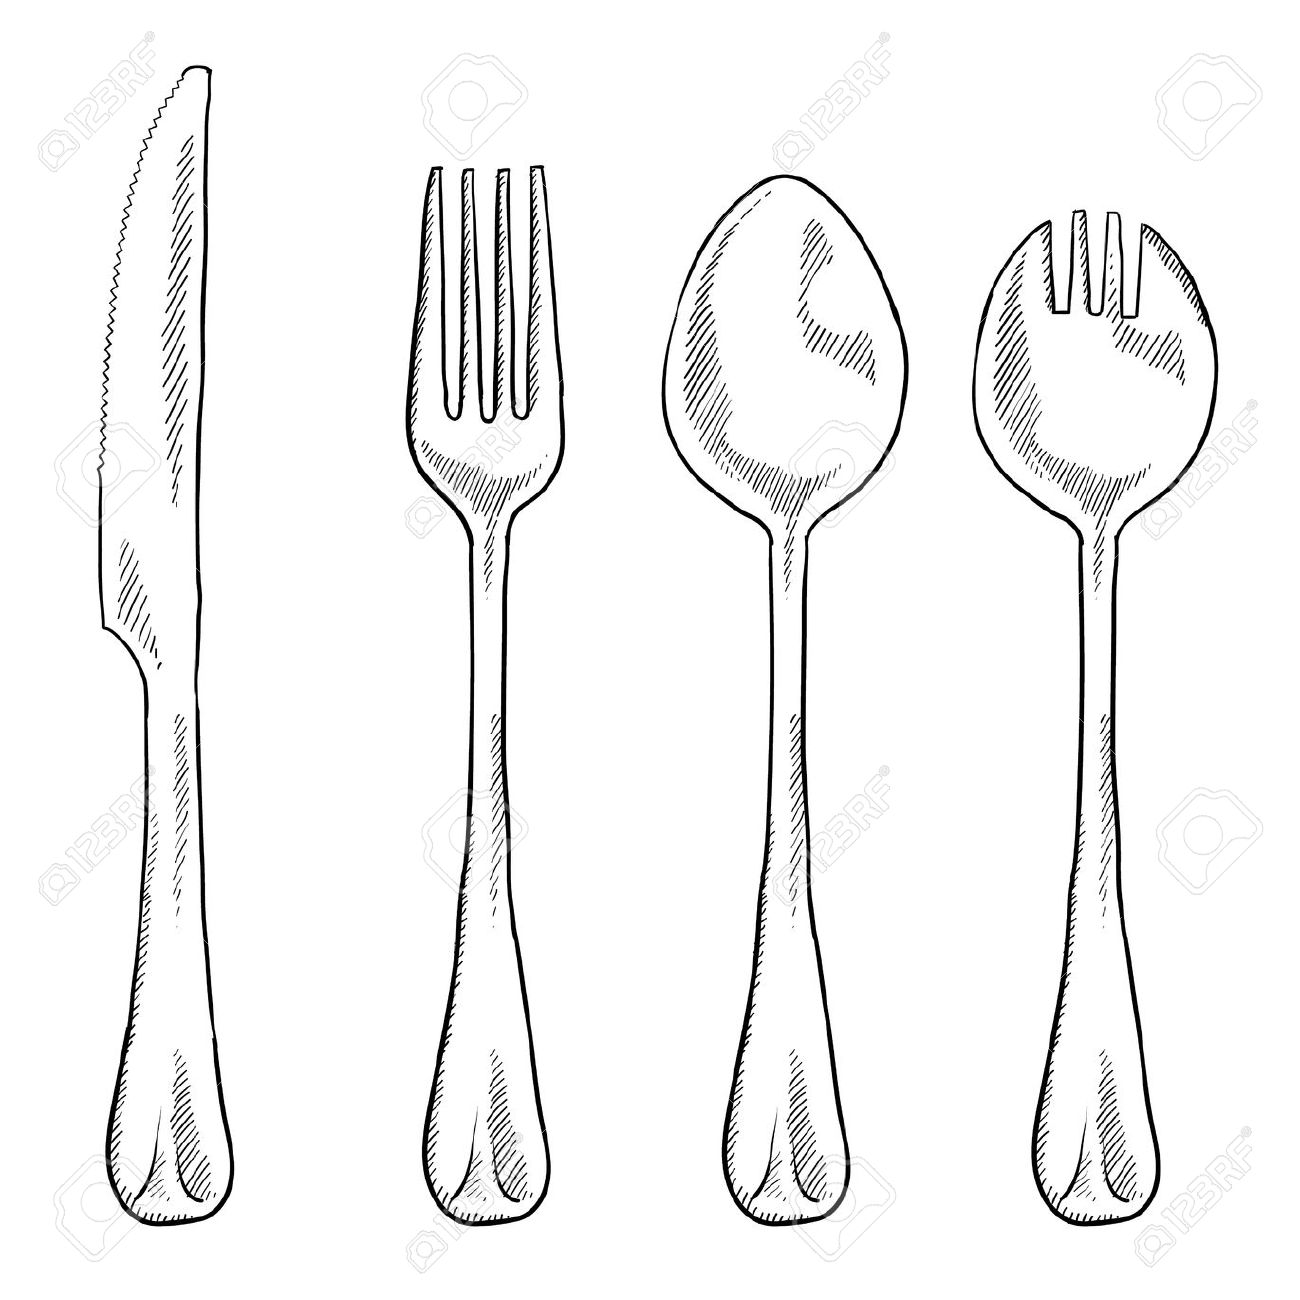 Clipart of table utensils.